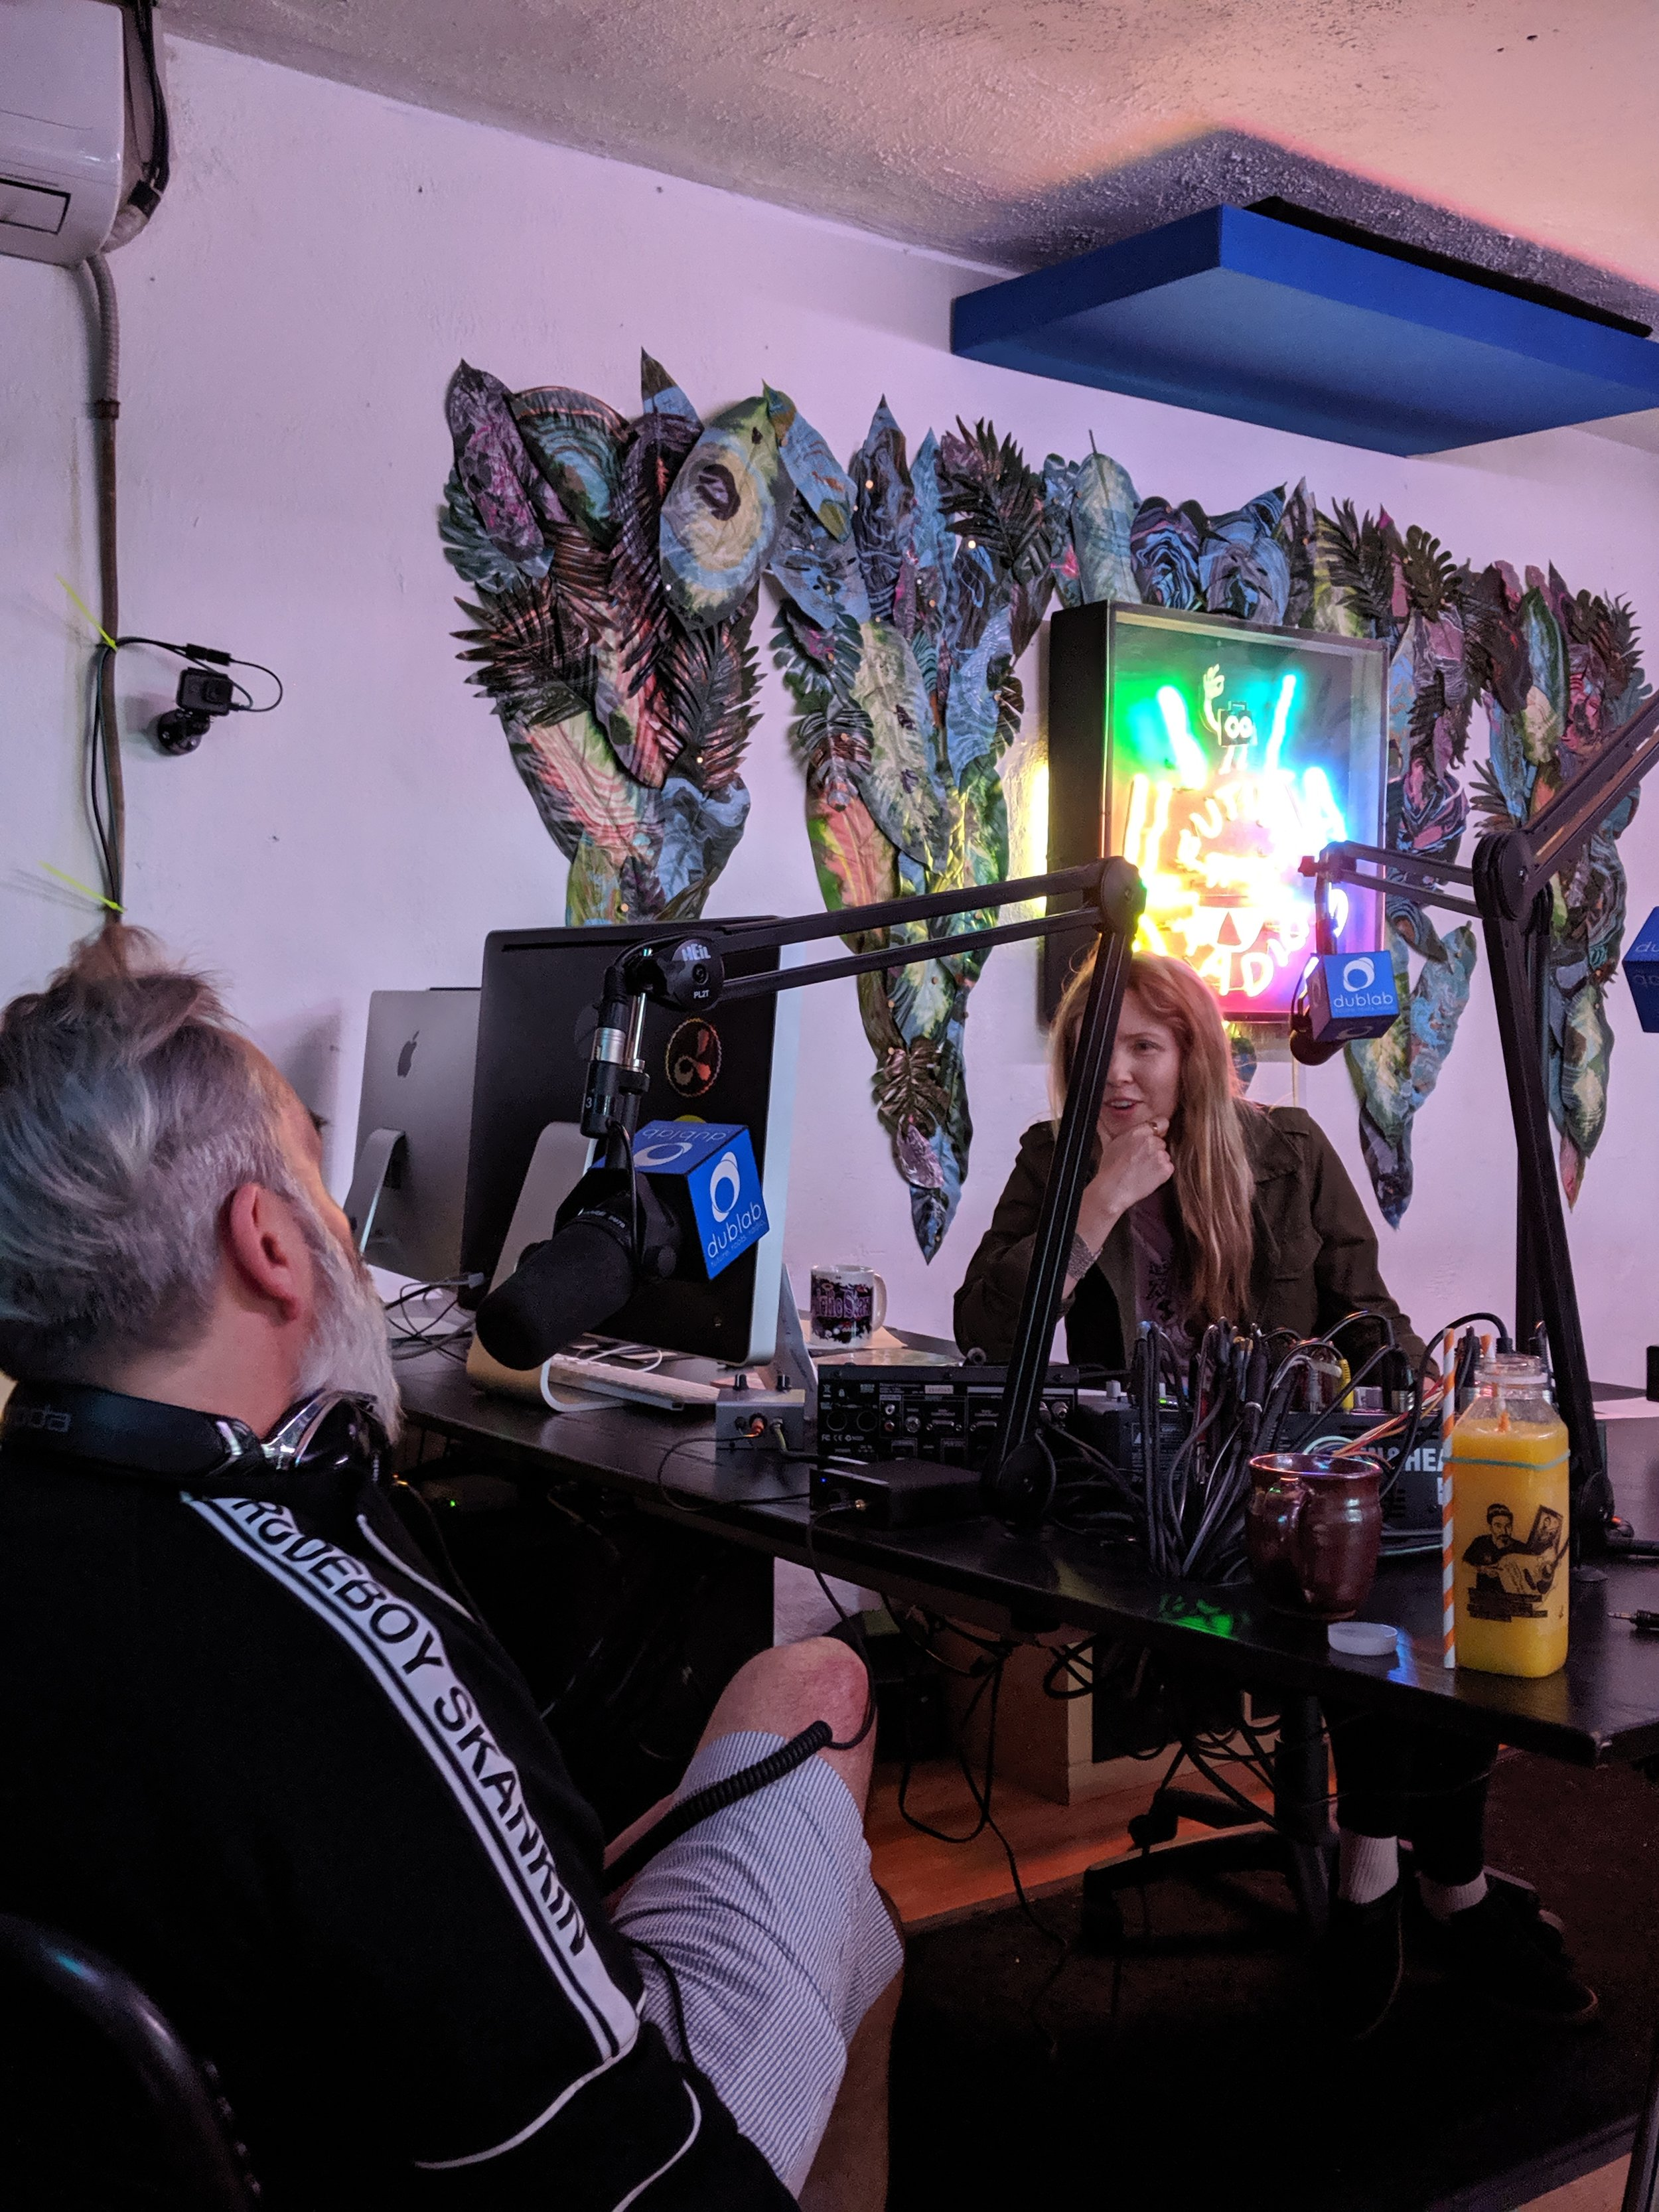 Donick Cary and Beatie Wolfe on Orange Juice for the Ears on dublab radio (13).jpg